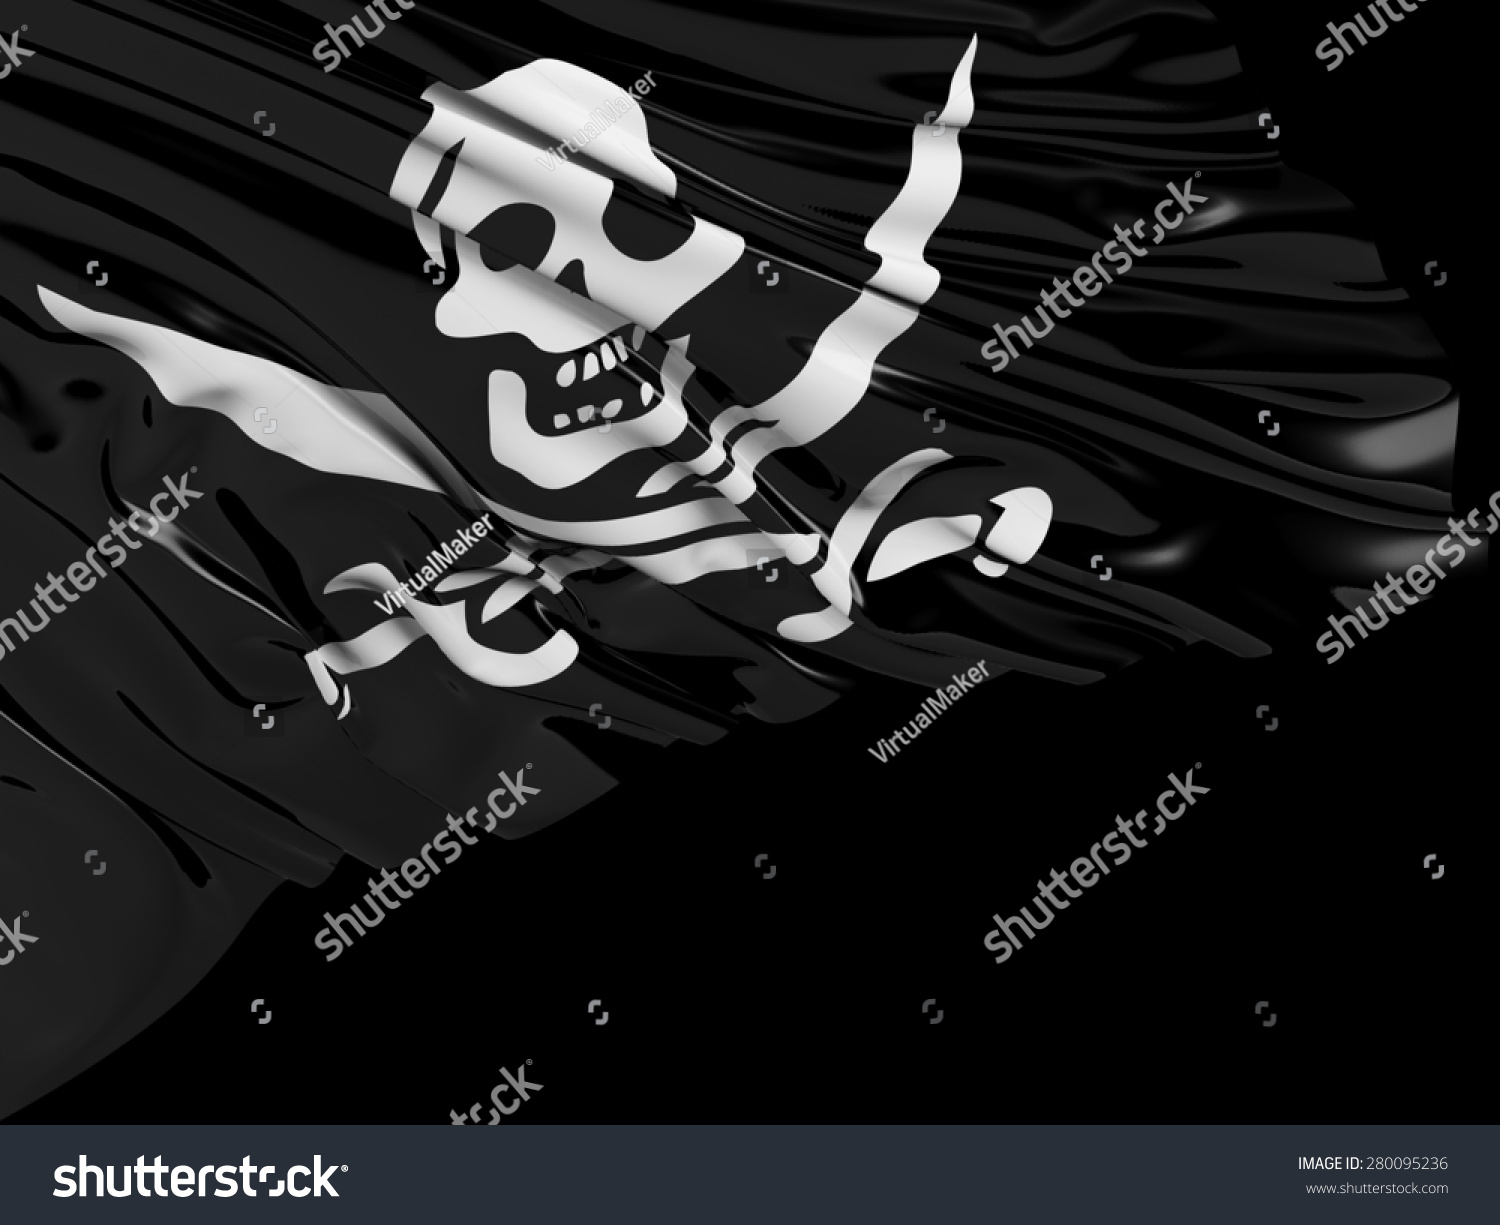 Pirate Flag Black Stock Illustration 280095236 - Shutterstock